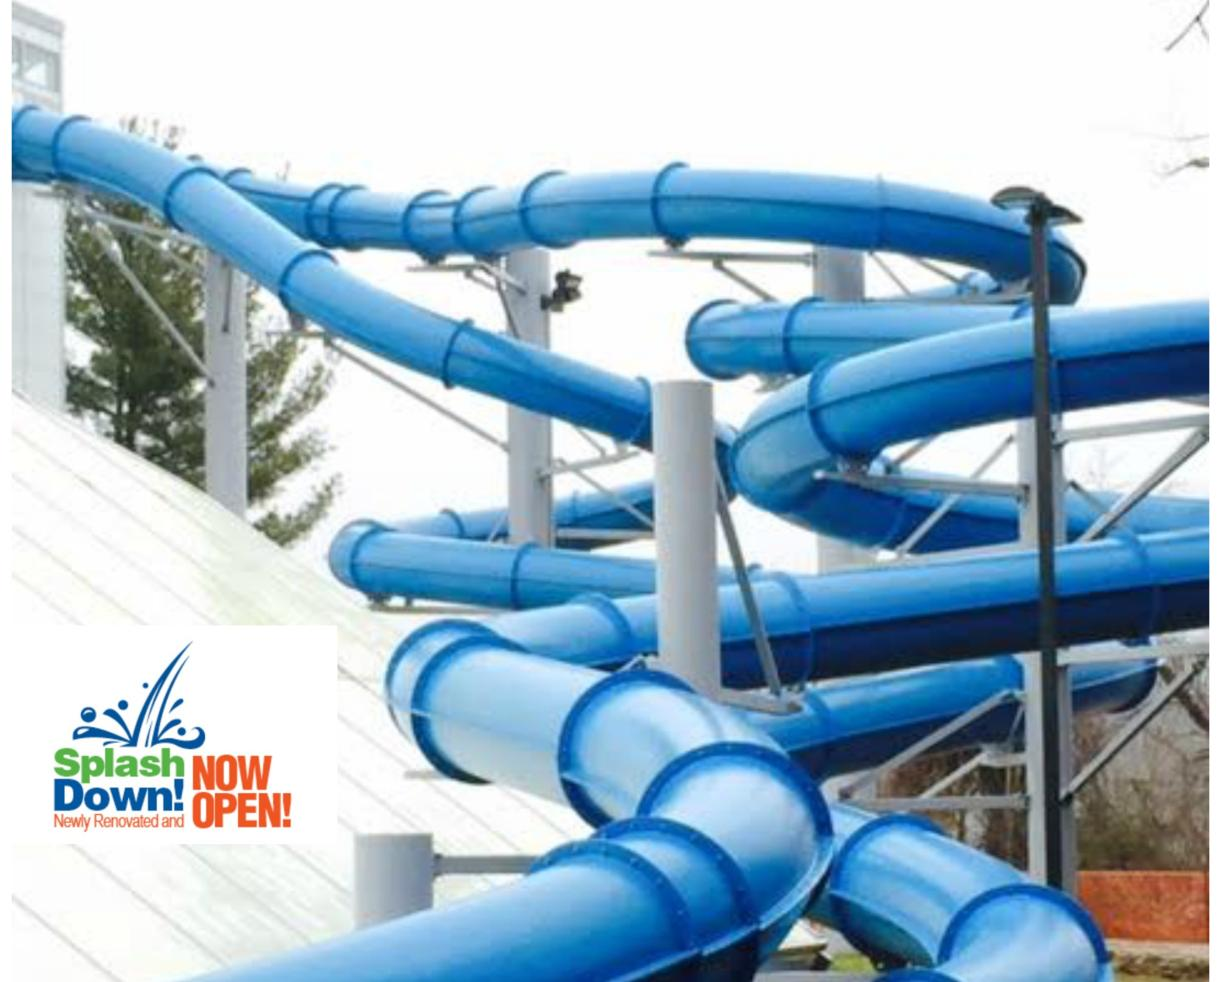 $31 for THREE Admissions to SplashDown Indoor Water Park at Columbia Swim Center ($45 Value - 32% Off)